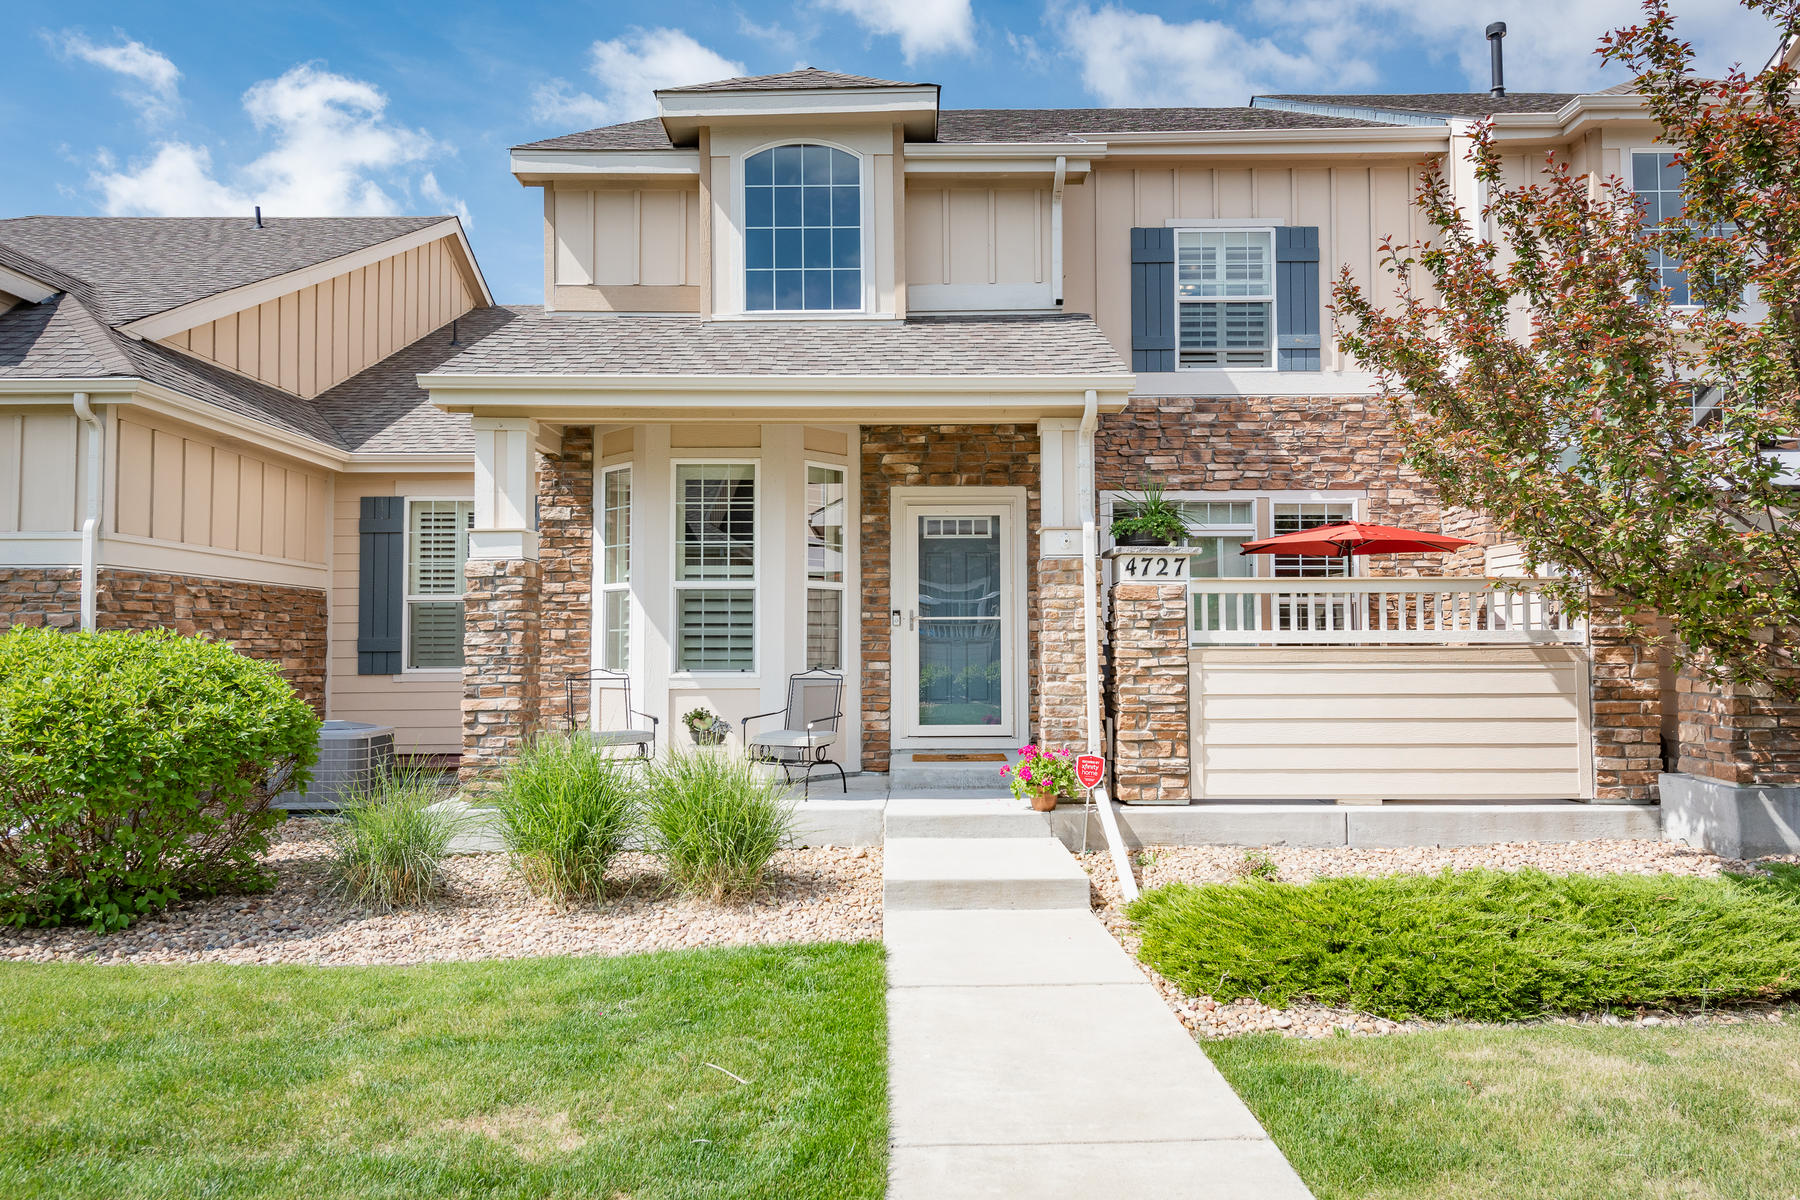 Single Family Homes for Sale at Immaculate, Spacious Townhome in Broomfield's Wildgrass 4727 Raven Run Broomfield, Colorado 80023 United States